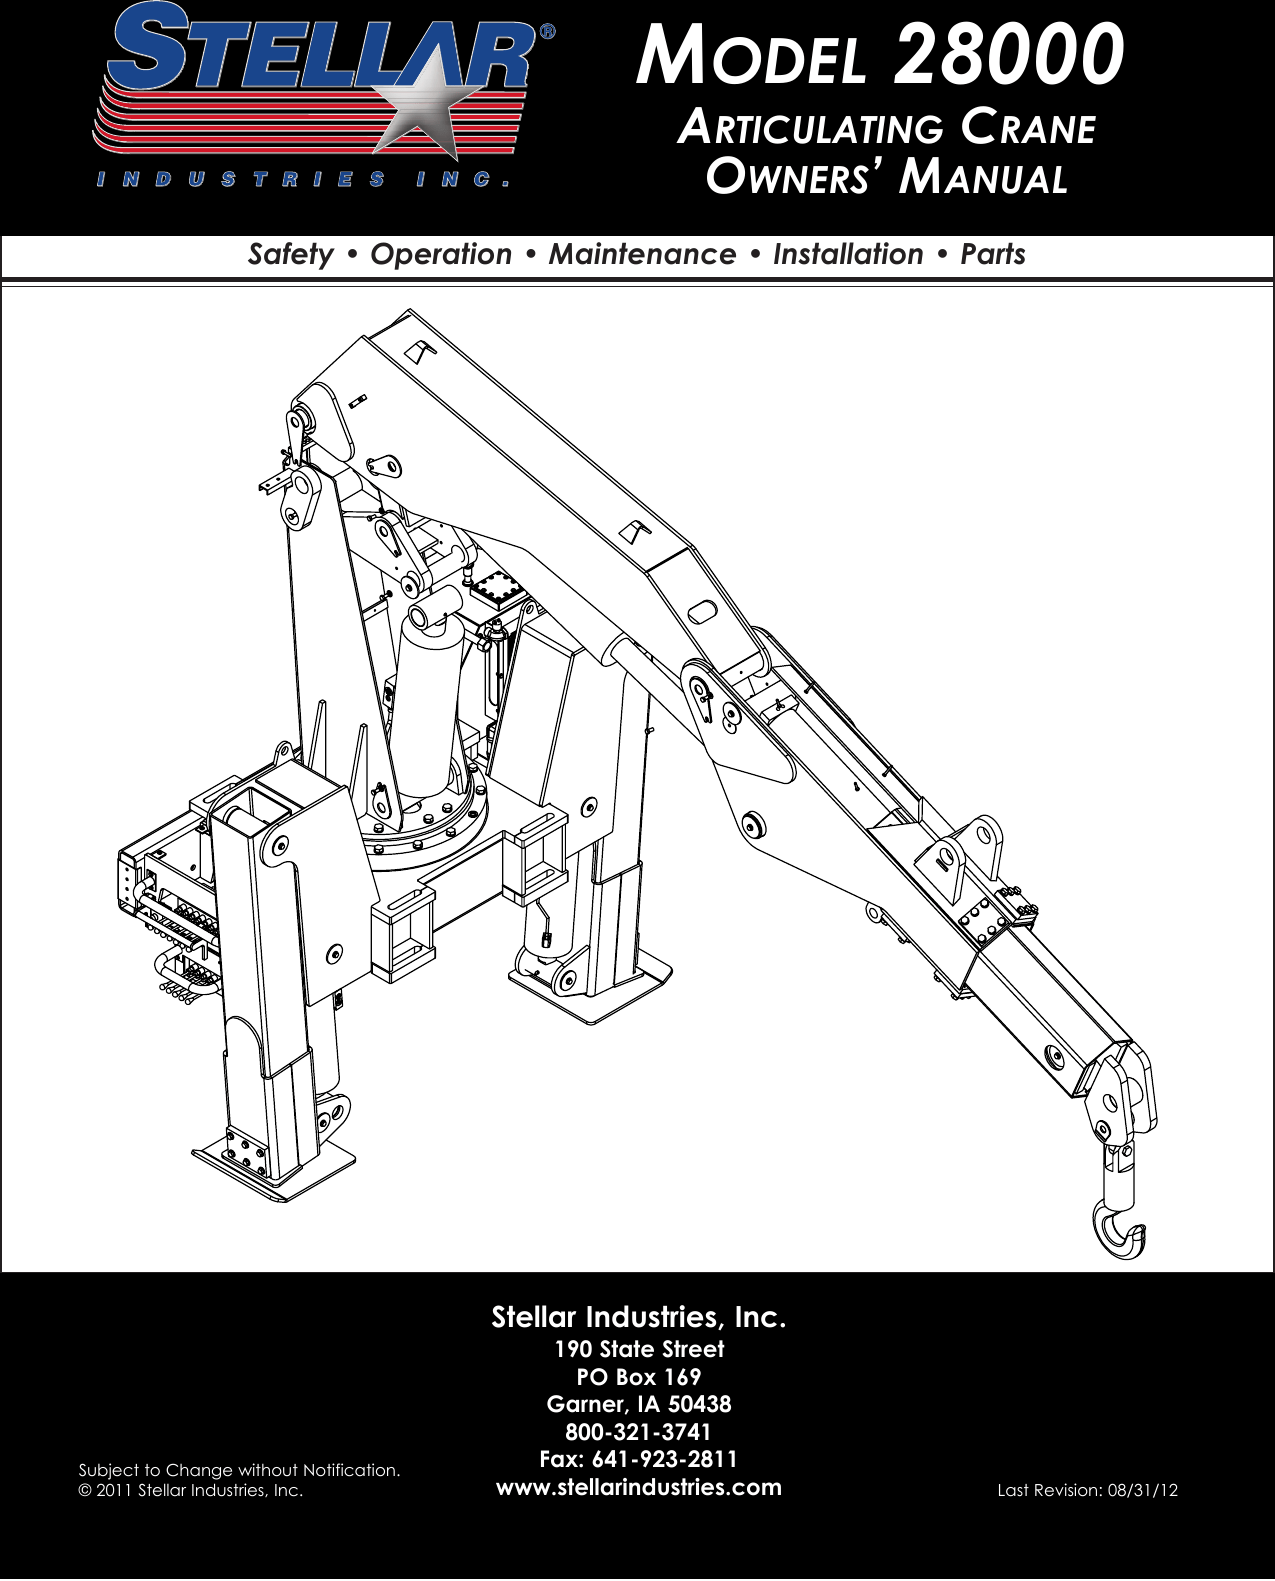 Stellar Industries 28000 Users Manual Articulating Crane